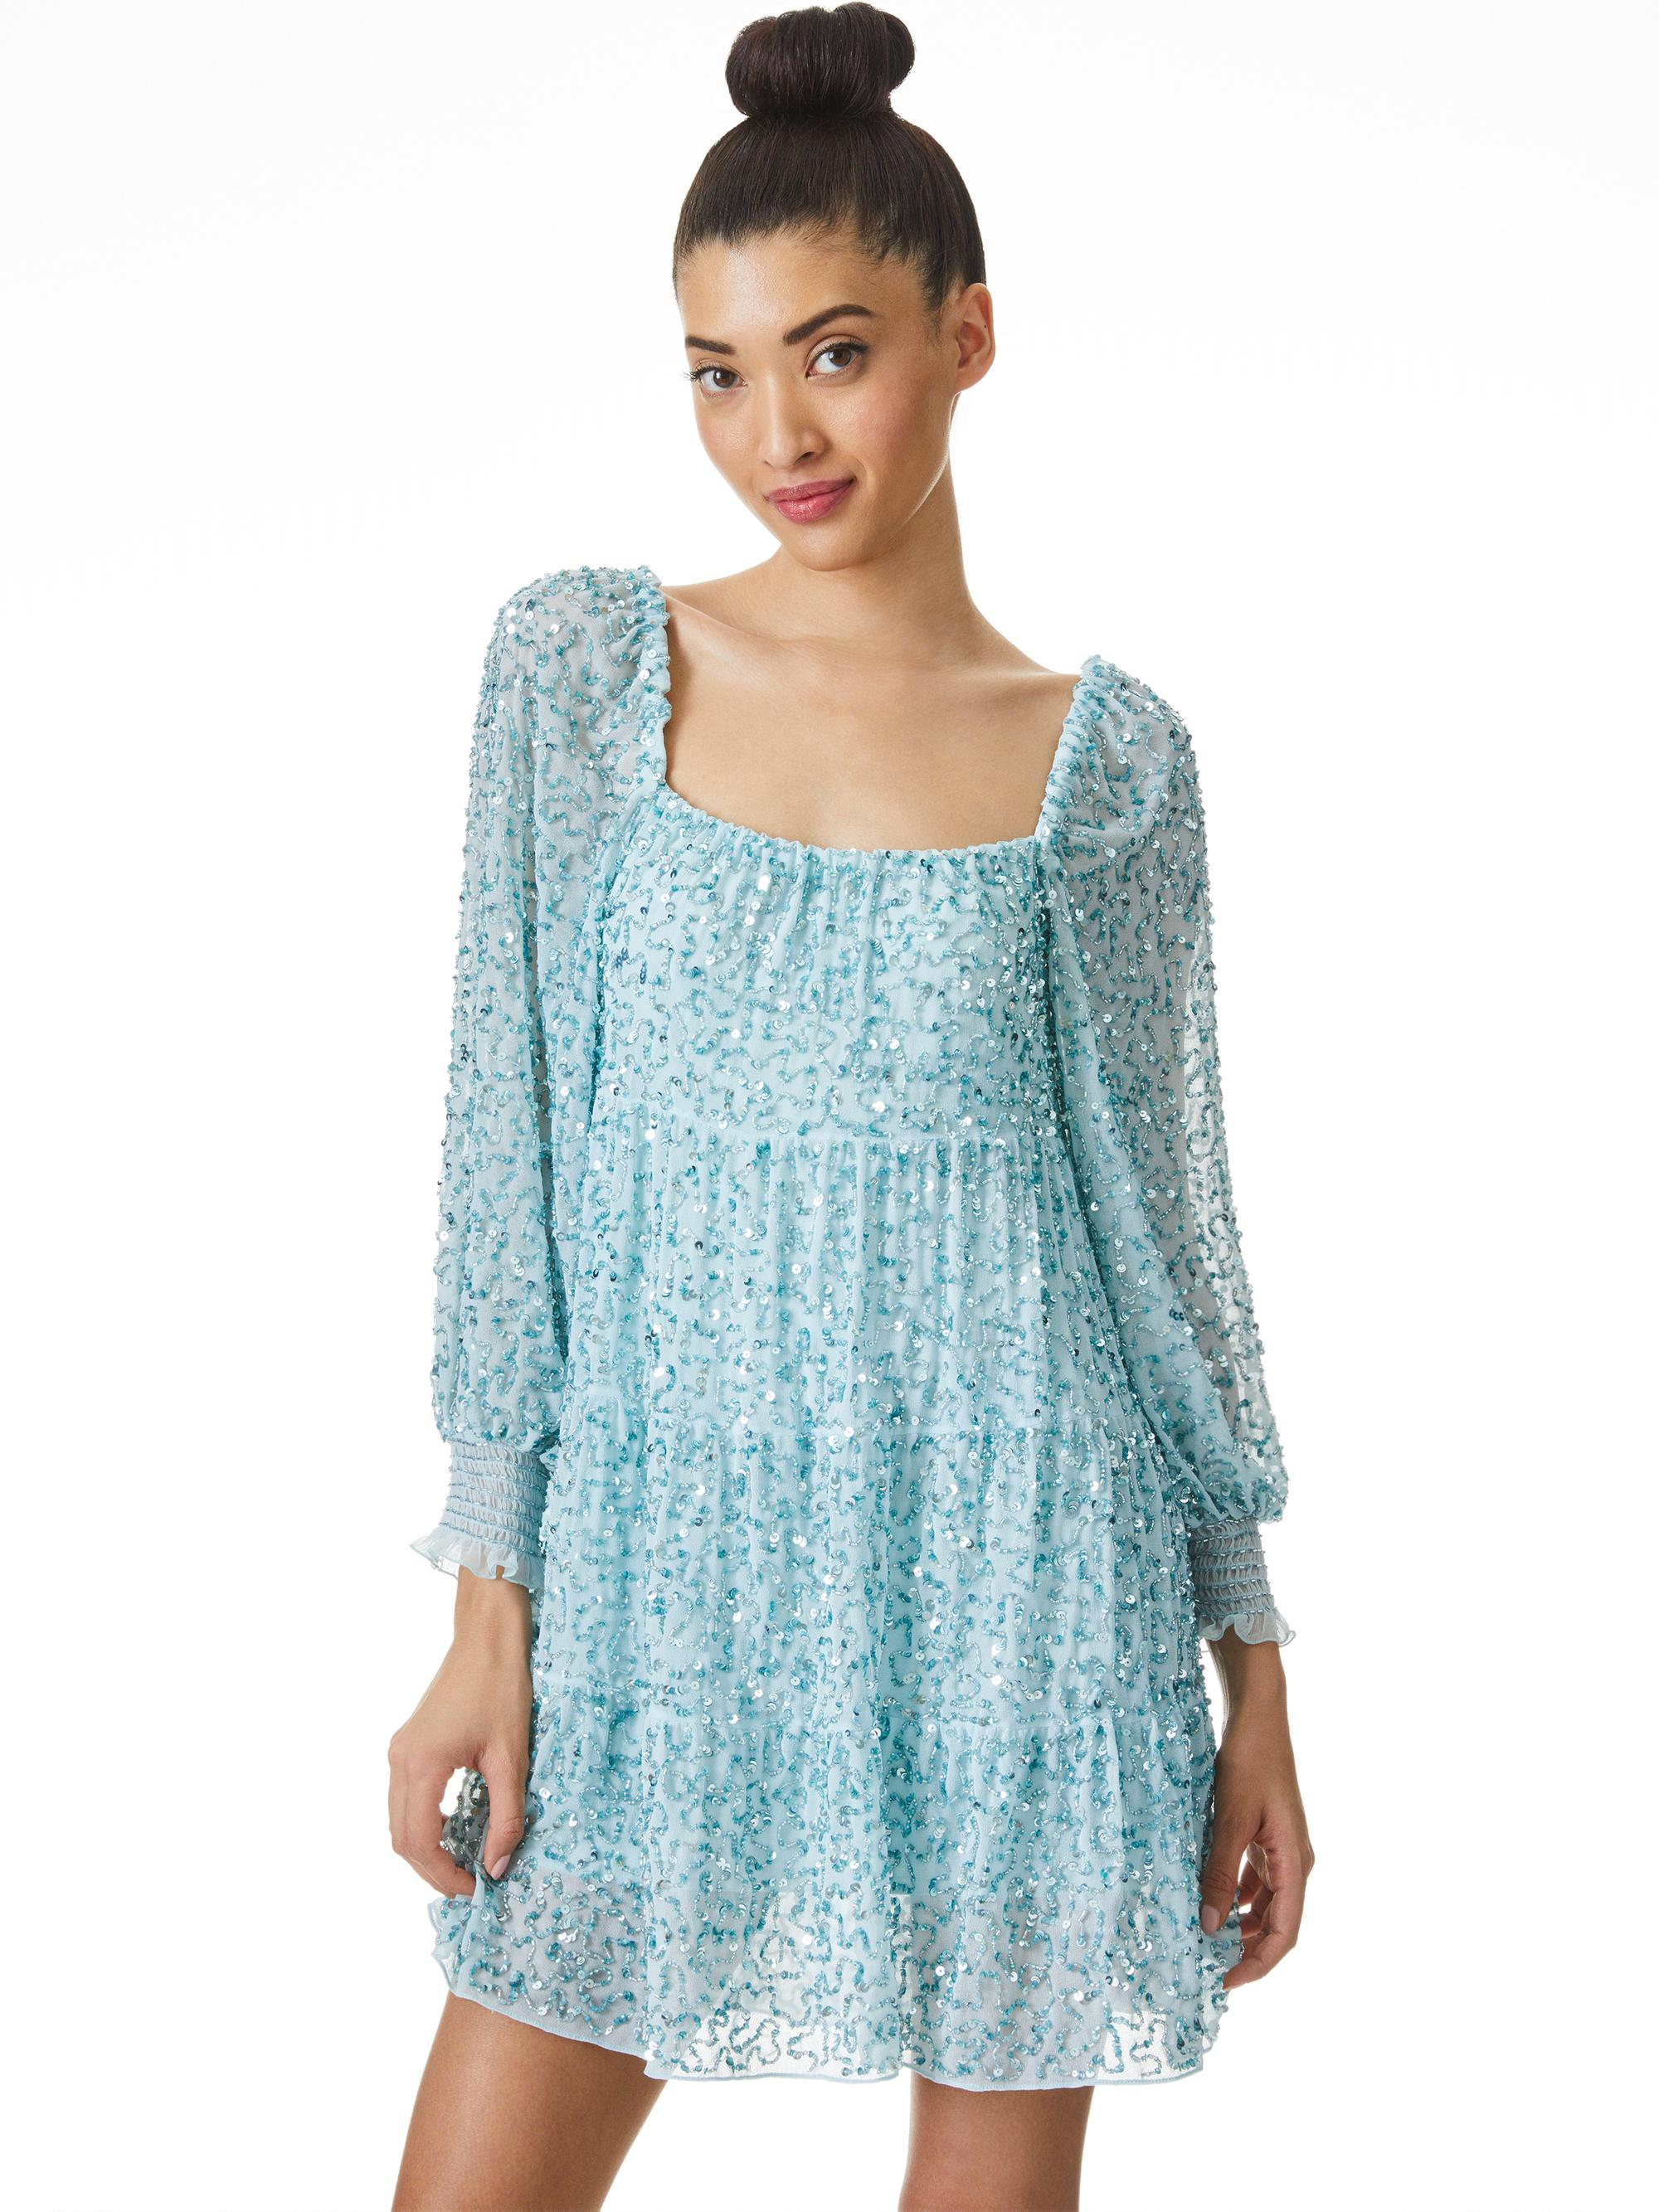 ROWEN SEQUIN EMBROIDERED MINI DRESS 2